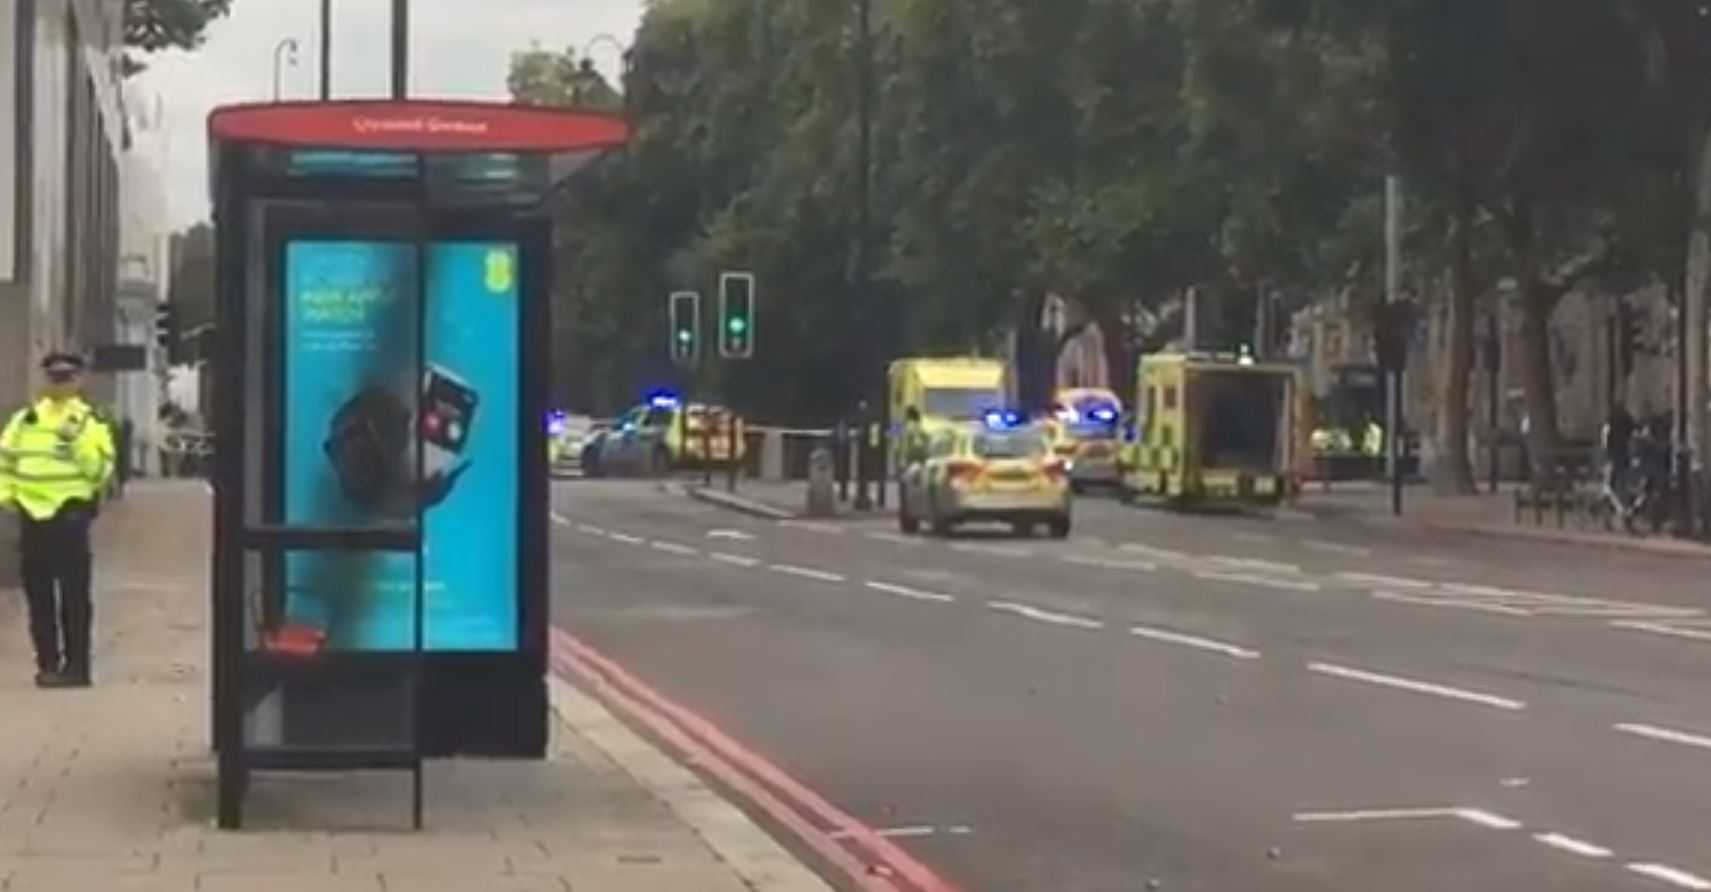 Vehicle  crashes near London's museum, terrorism ruled out